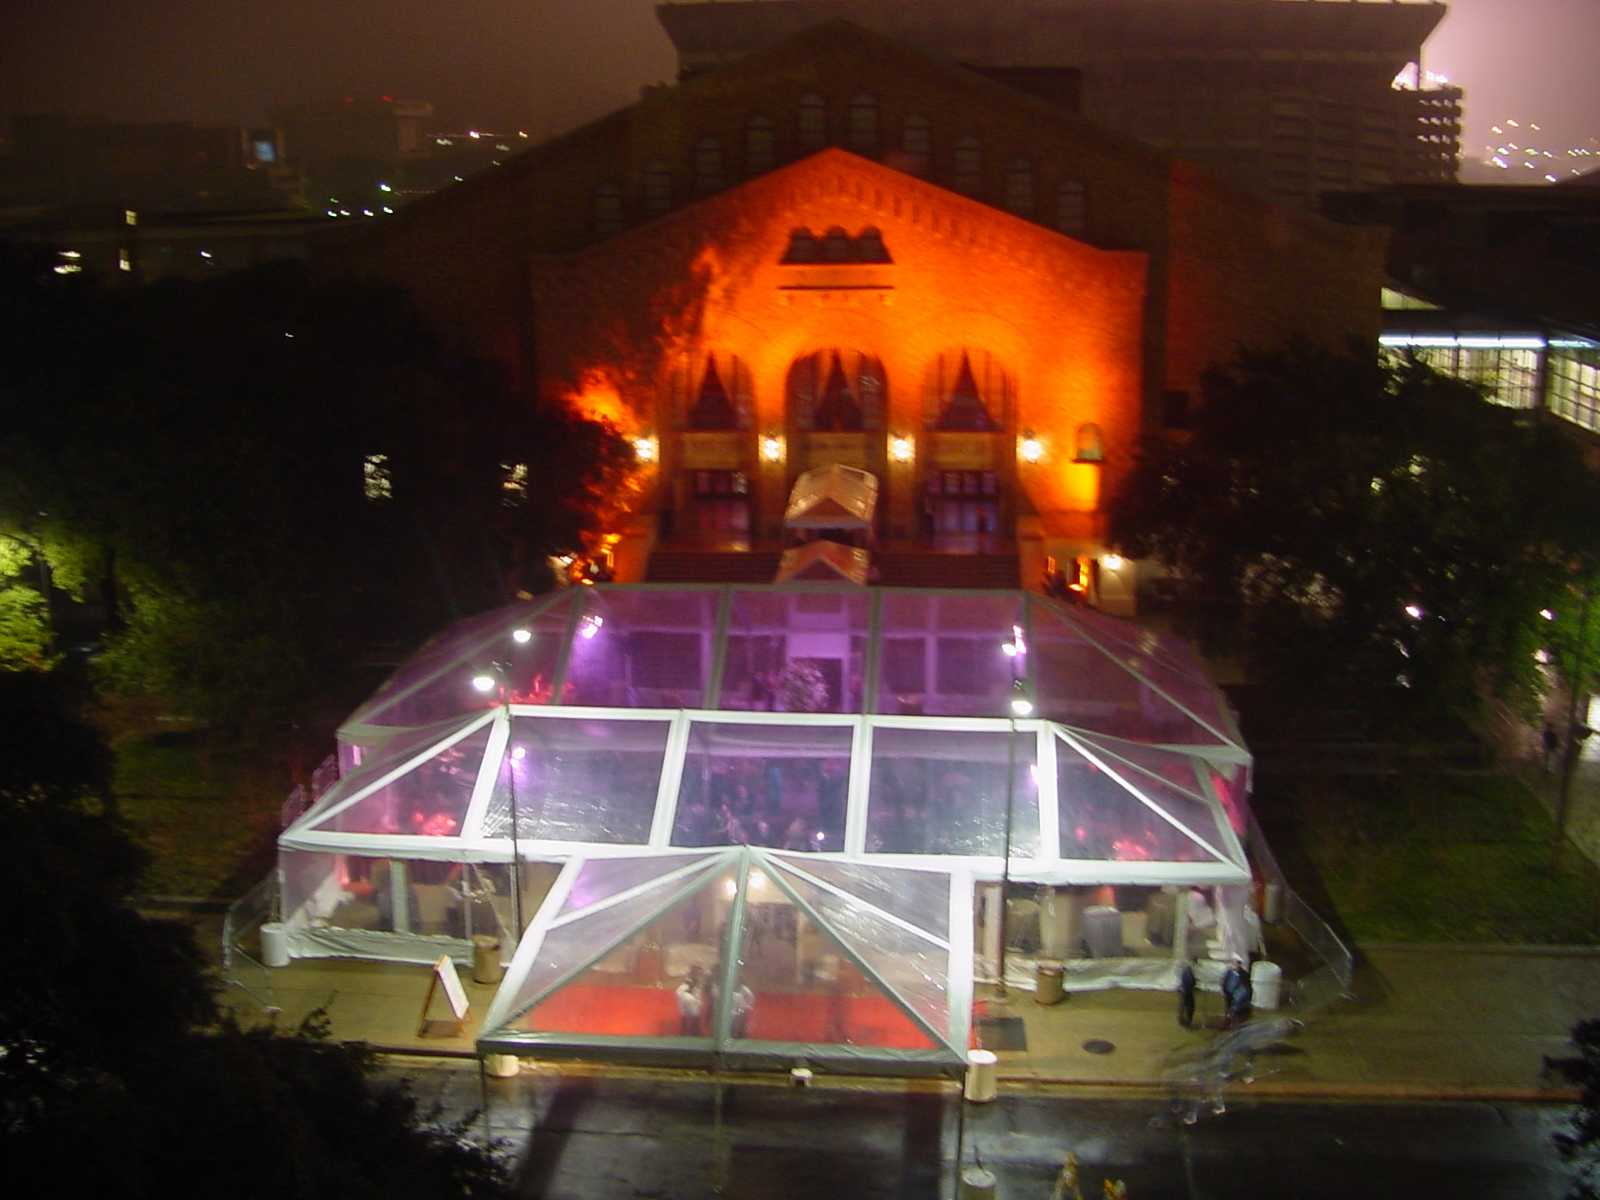 Texas Clear Tent